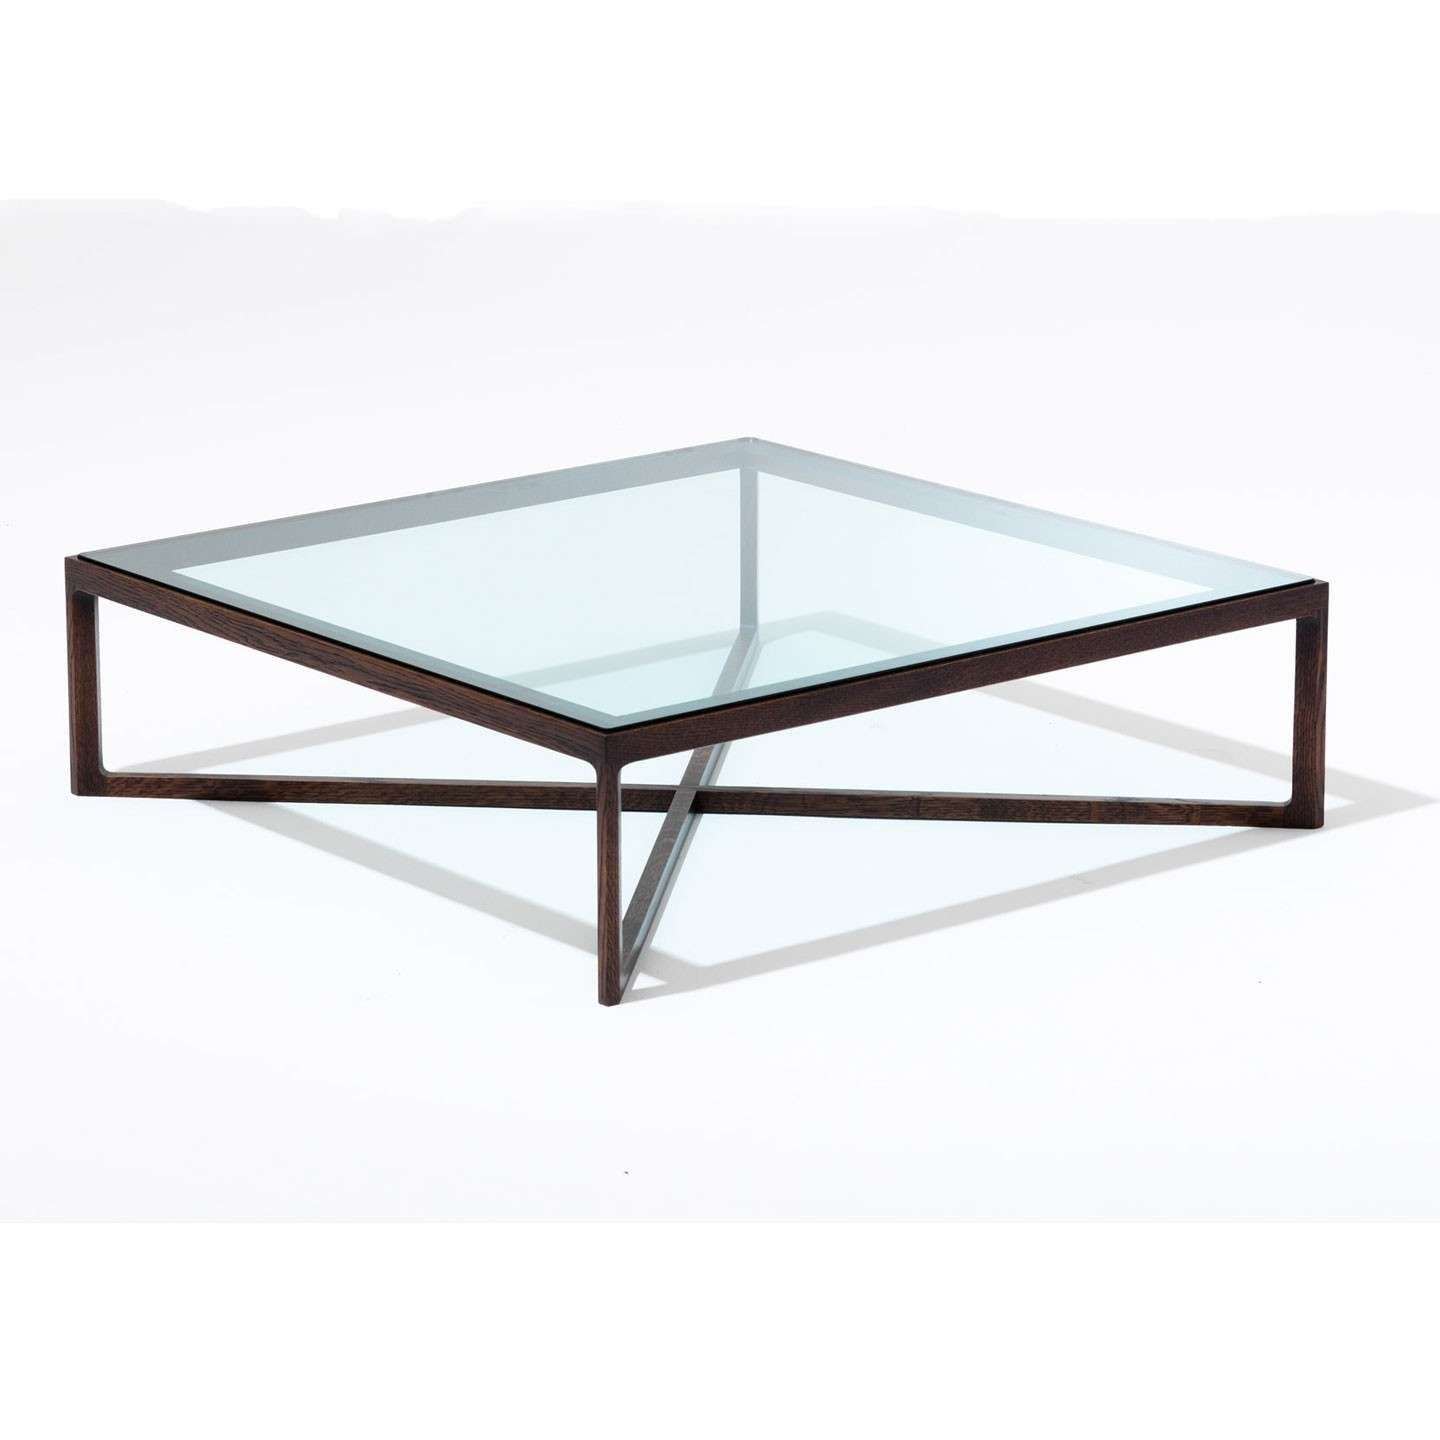 Decorations : Furniture Vintage Retro Style Coffee Table With For Famous Retro Glass Coffee Tables (View 8 of 20)